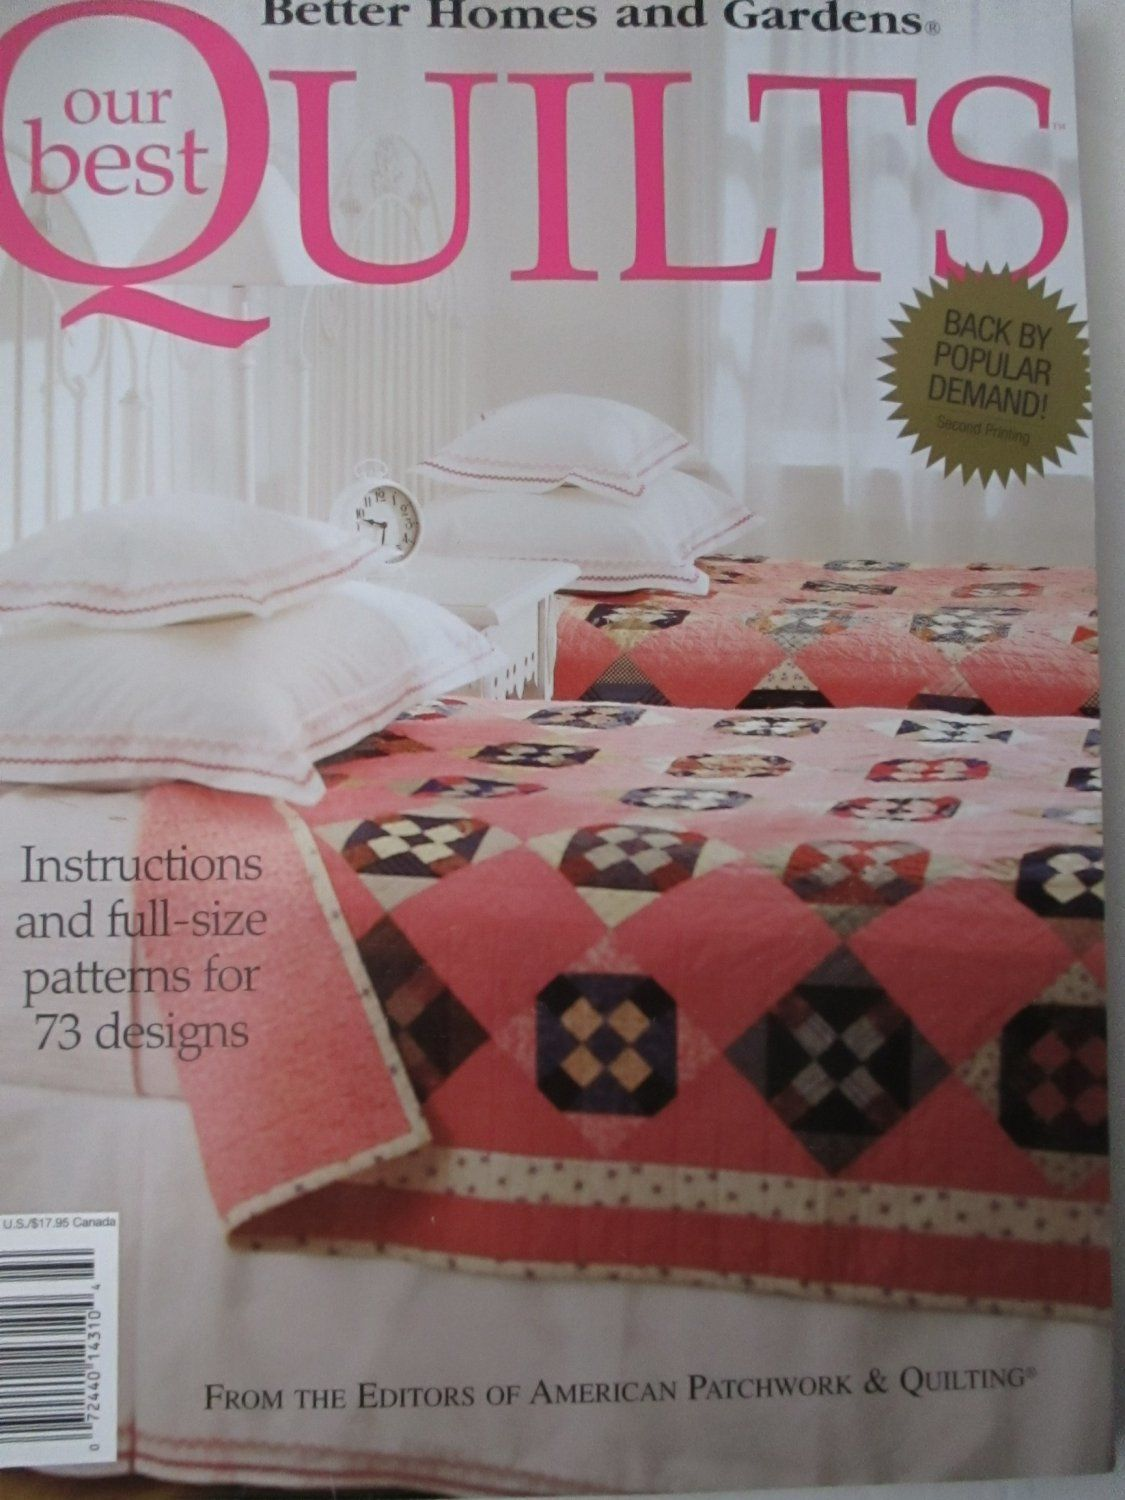 BETTER+HOMES+AND+GARDENS+OUR+BEST+QUILTS | Quilting Books ... : best quilting books - Adamdwight.com